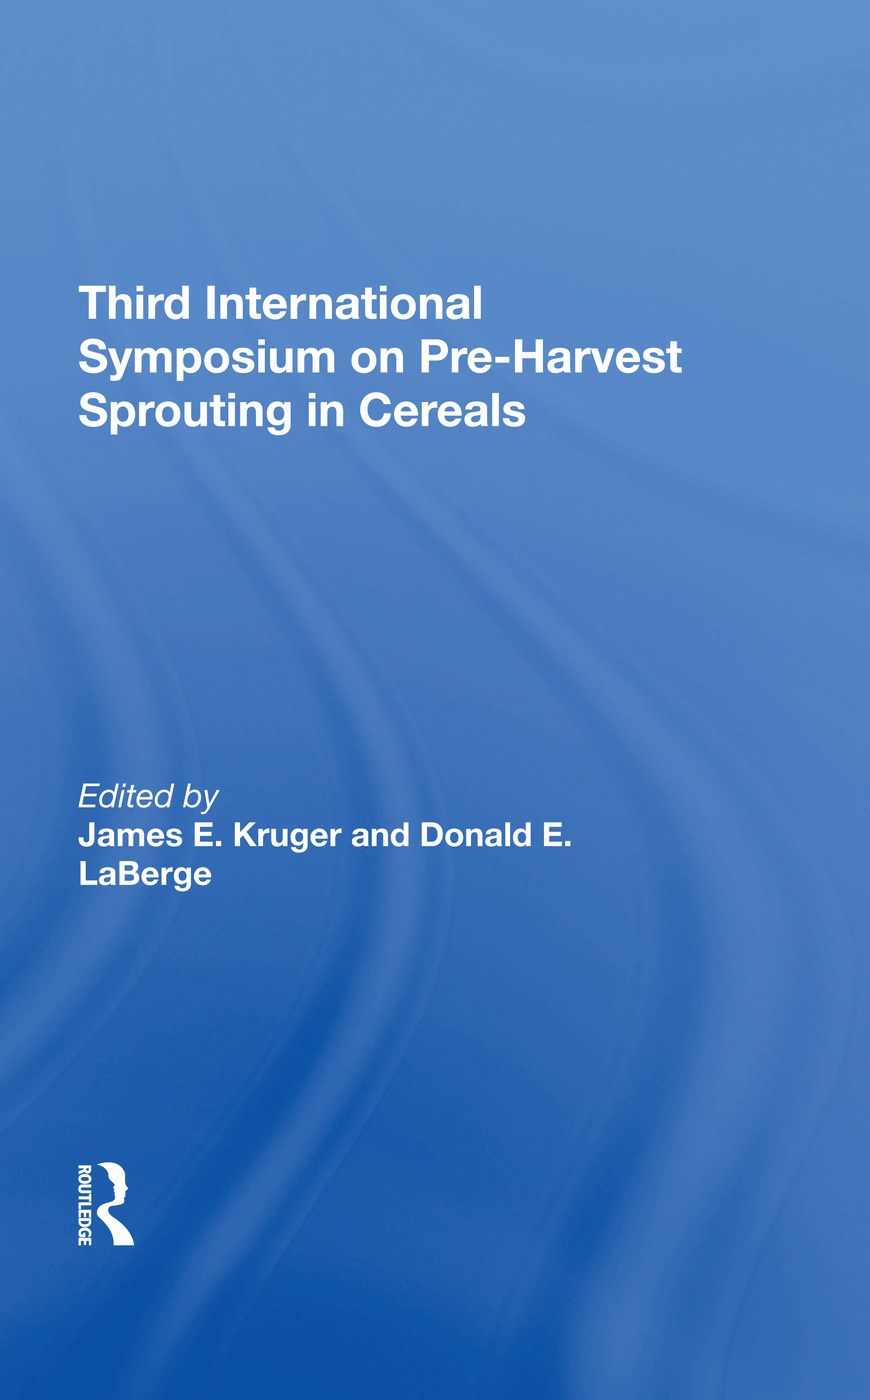 Third International Symposium on Pre-Harvest Sprouting in Cereals